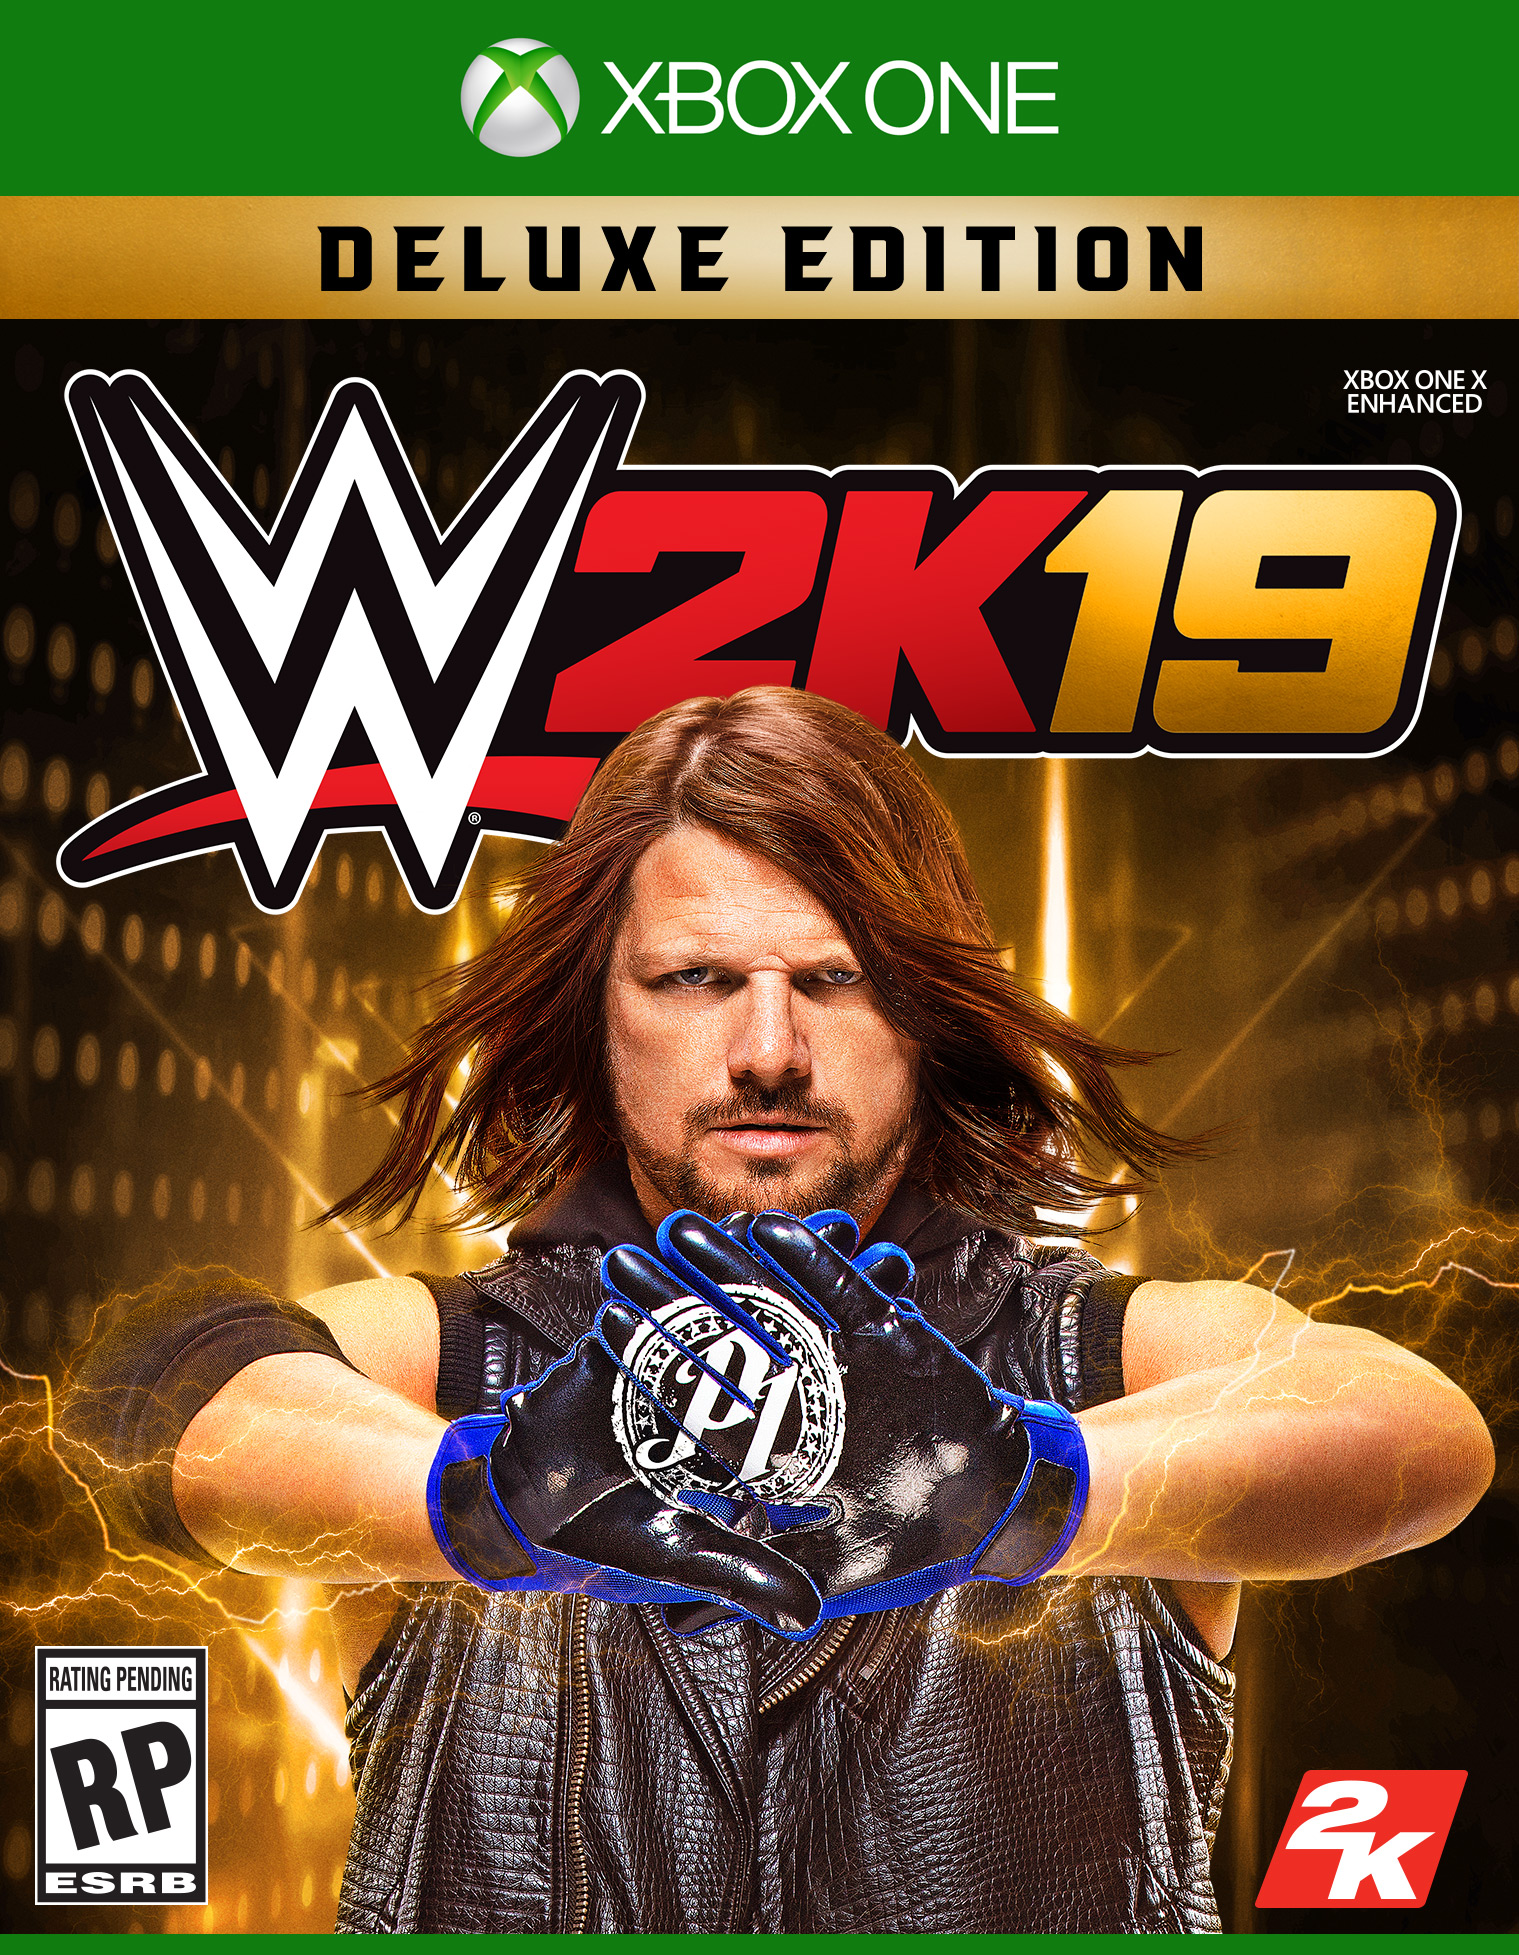 WWE 2K19 Deluxe Edition, 2K, Xbox One, 710425590733 by 2K